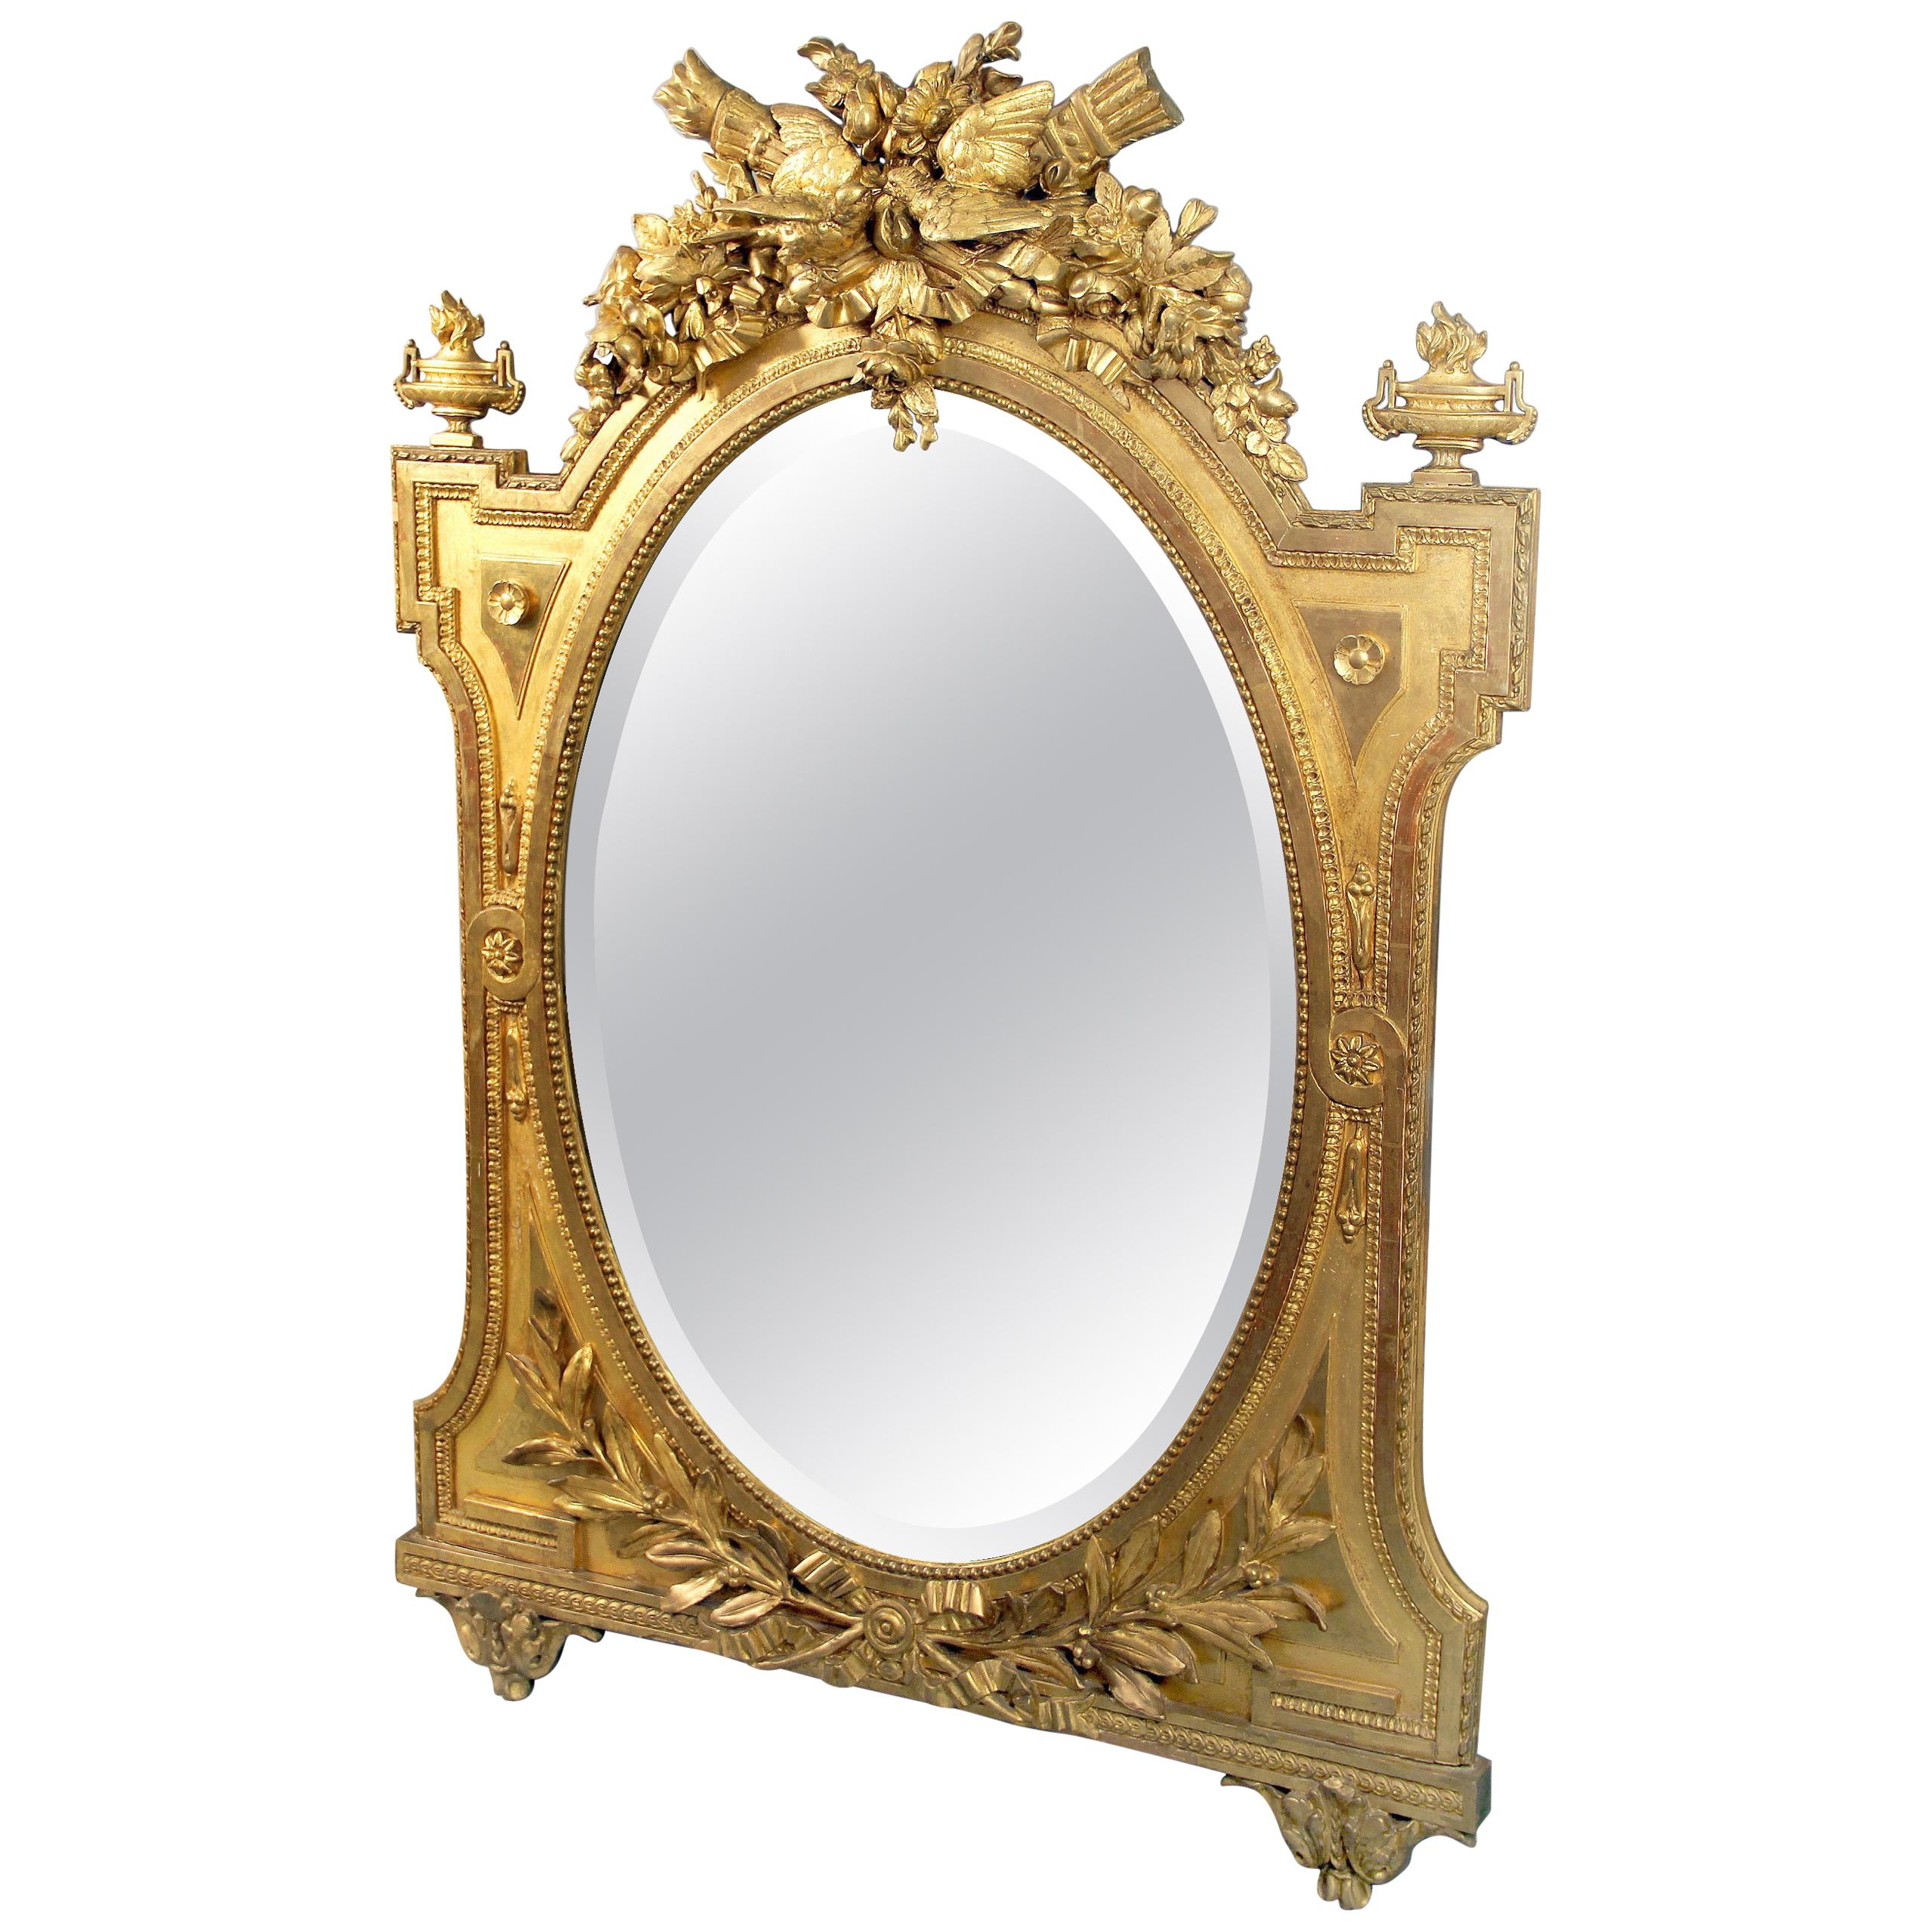 Very Fine Late 19th Century Napoleon III Hand-Carved Giltwood Mirror